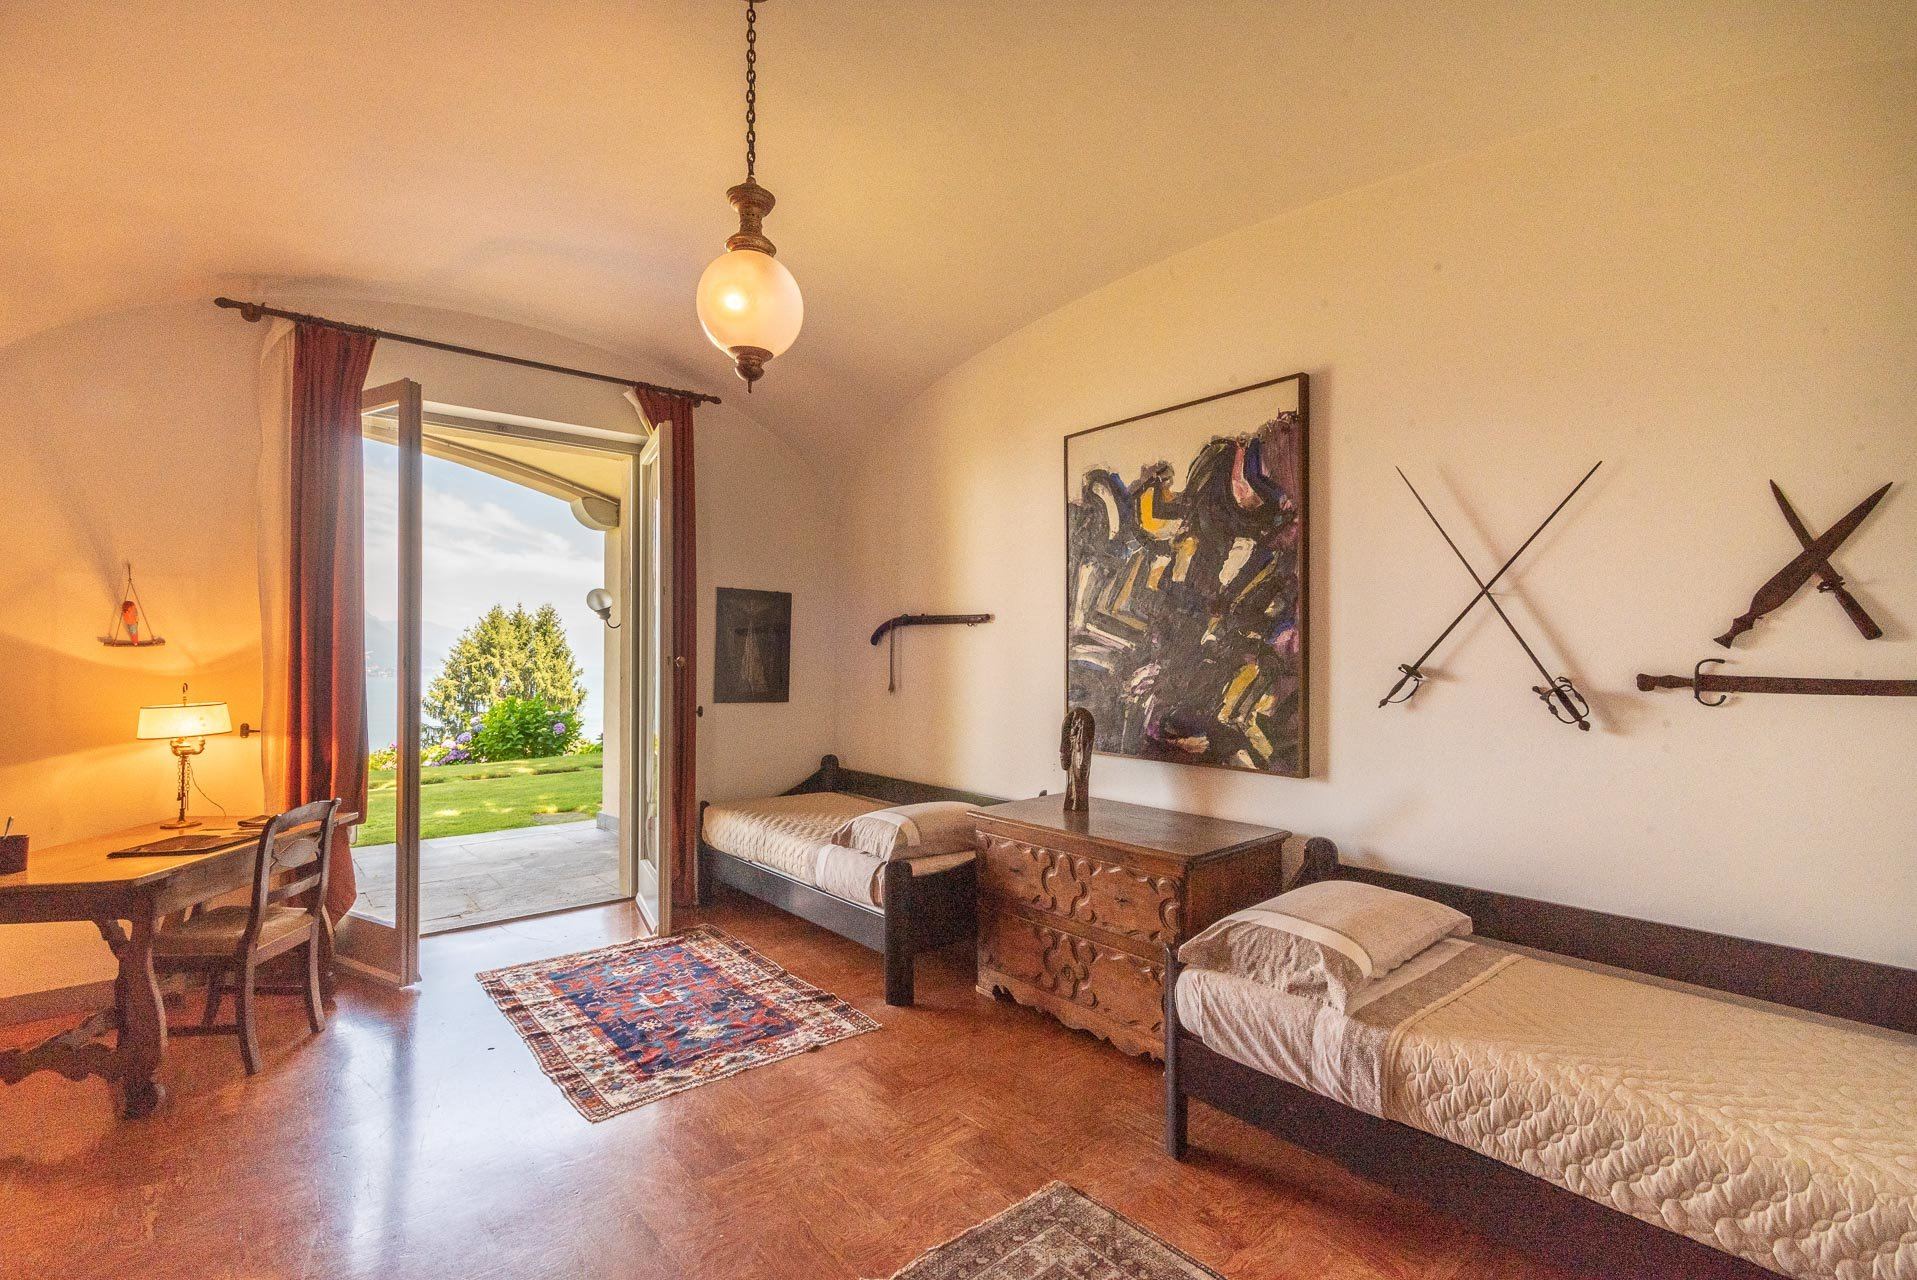 Elegant lake view villa for sale in Stresa - bedroom with a view